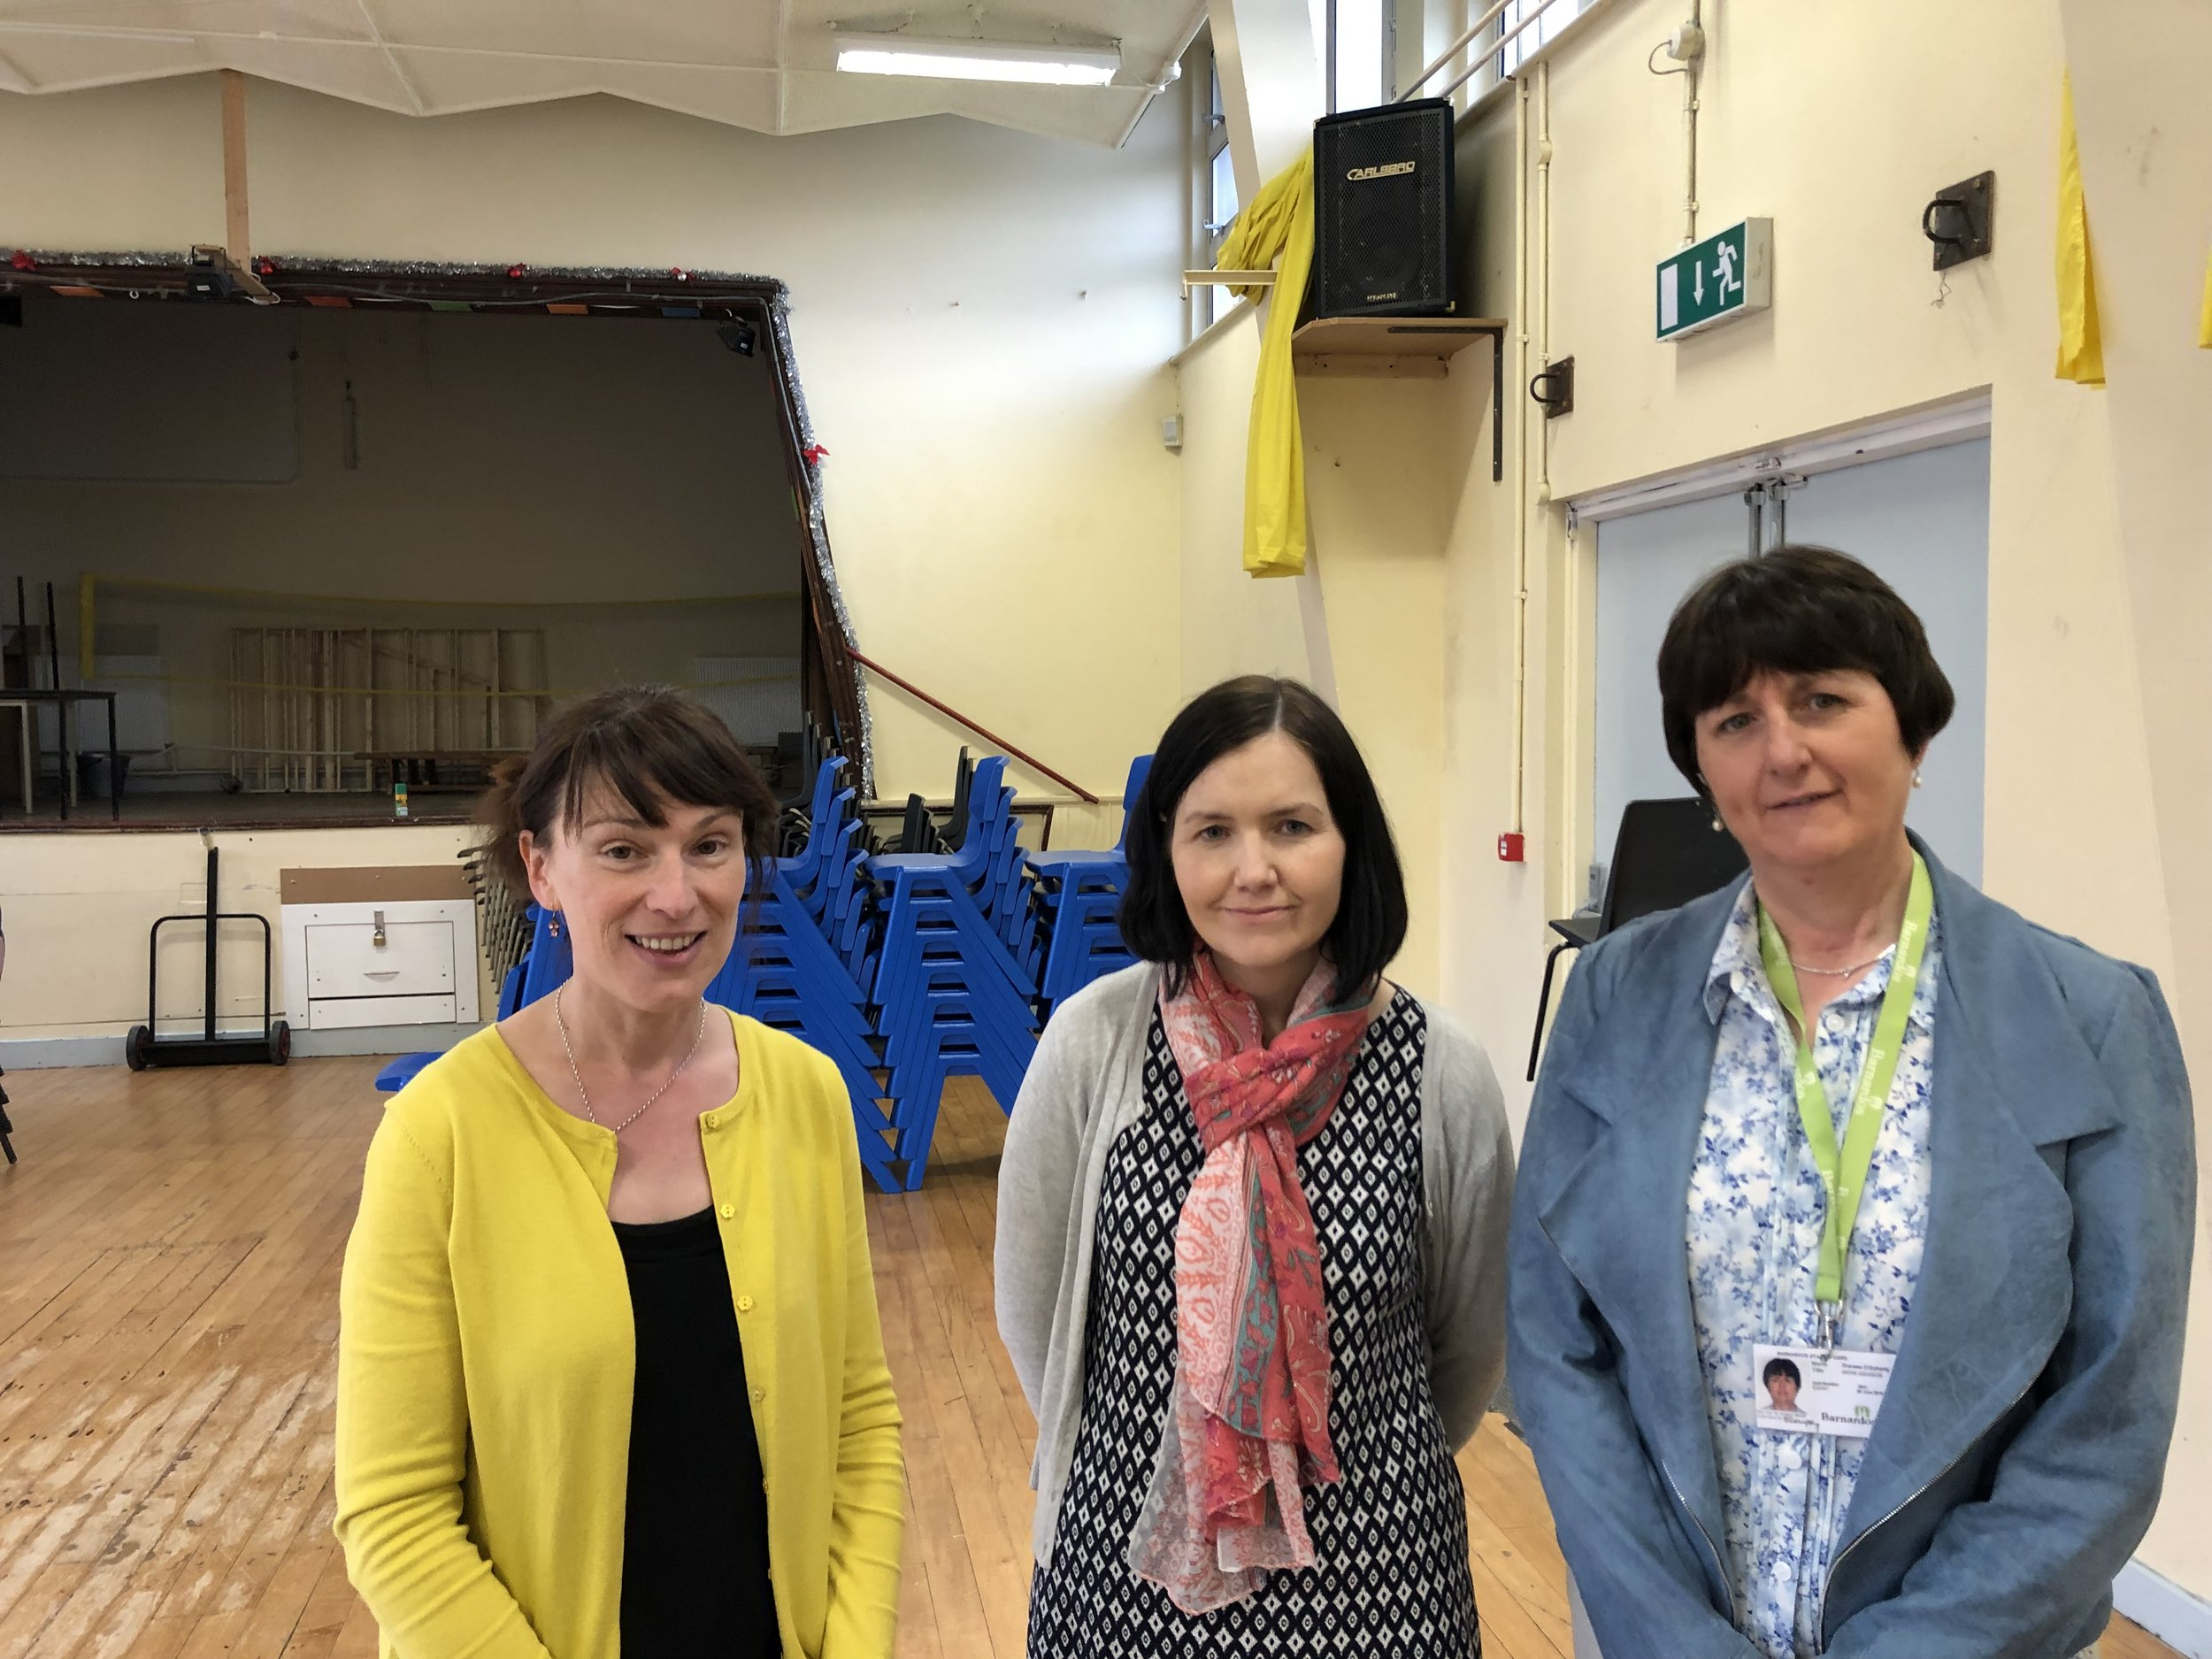 The staff from Barnardos who run this fantastic programme: Michelle King, Suzanne Connolly and Therese O'Doherty.